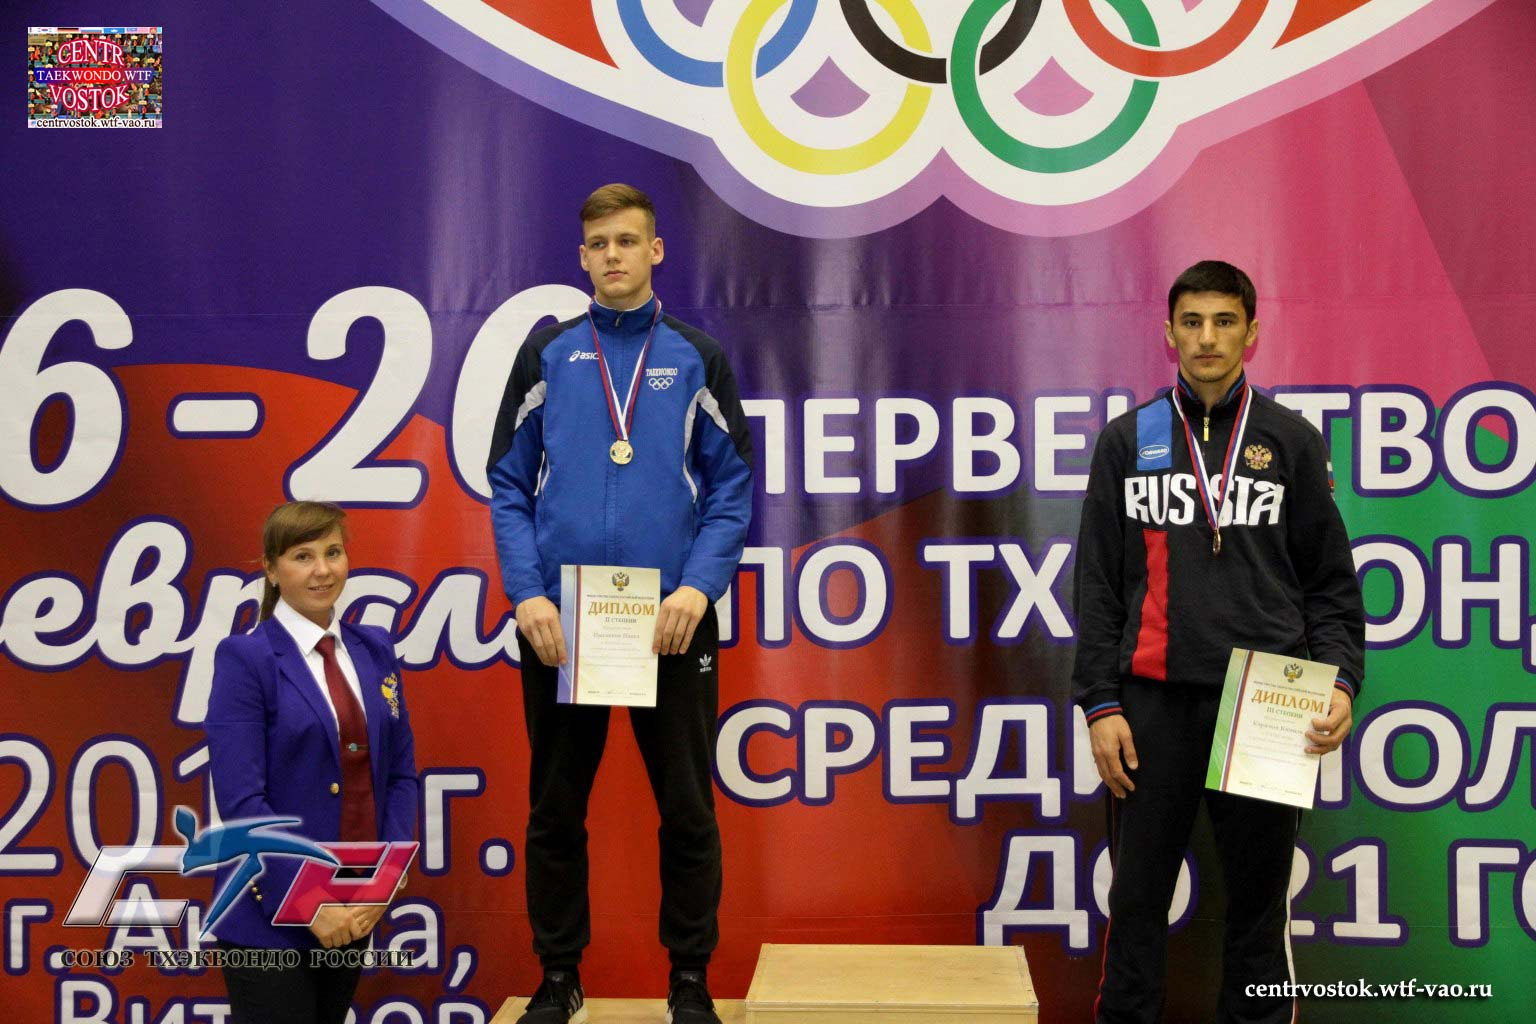 Male_medals_80kg